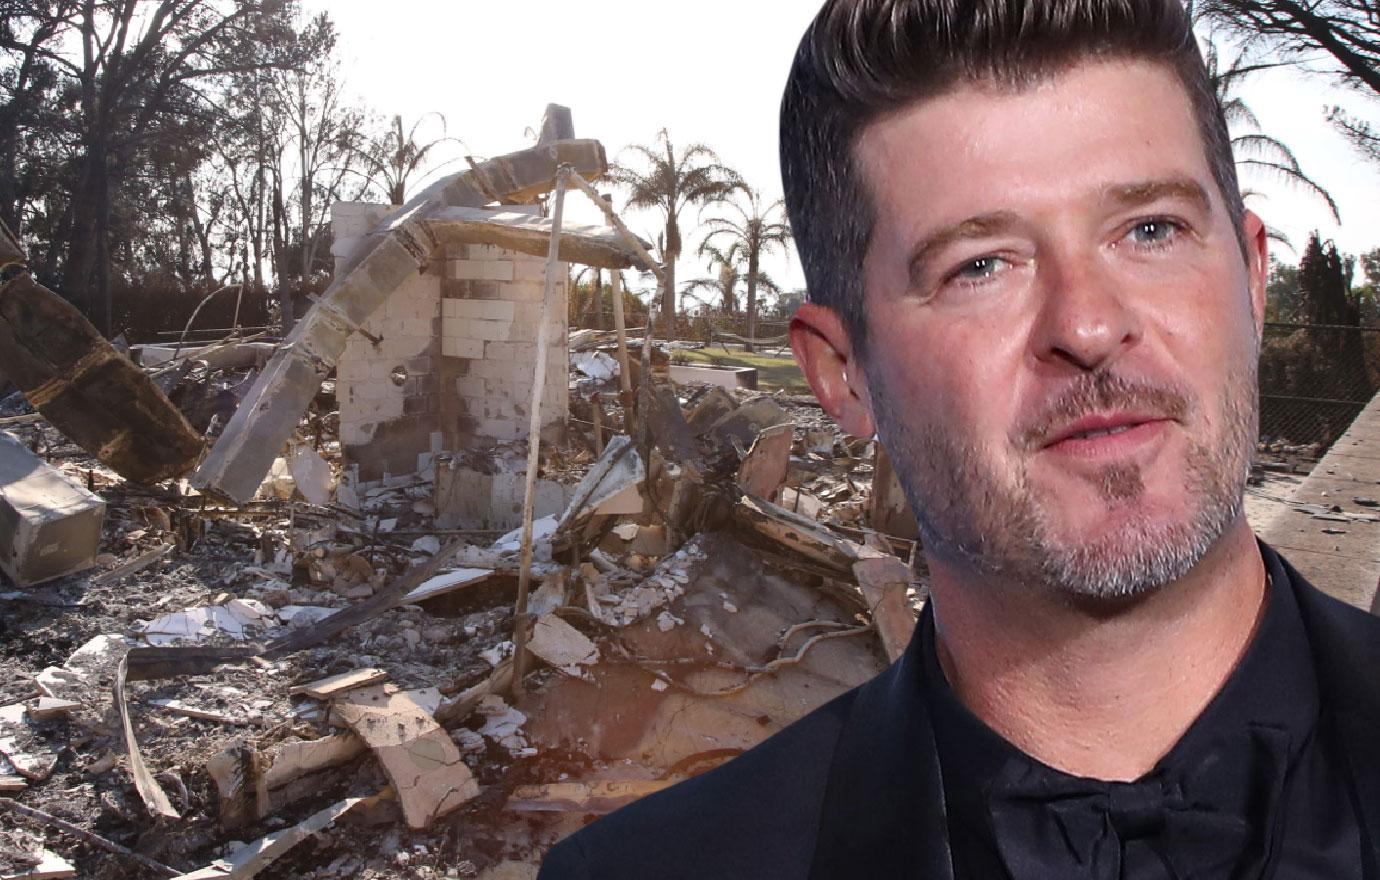 See Robin Thicke's Burned Down House Photos